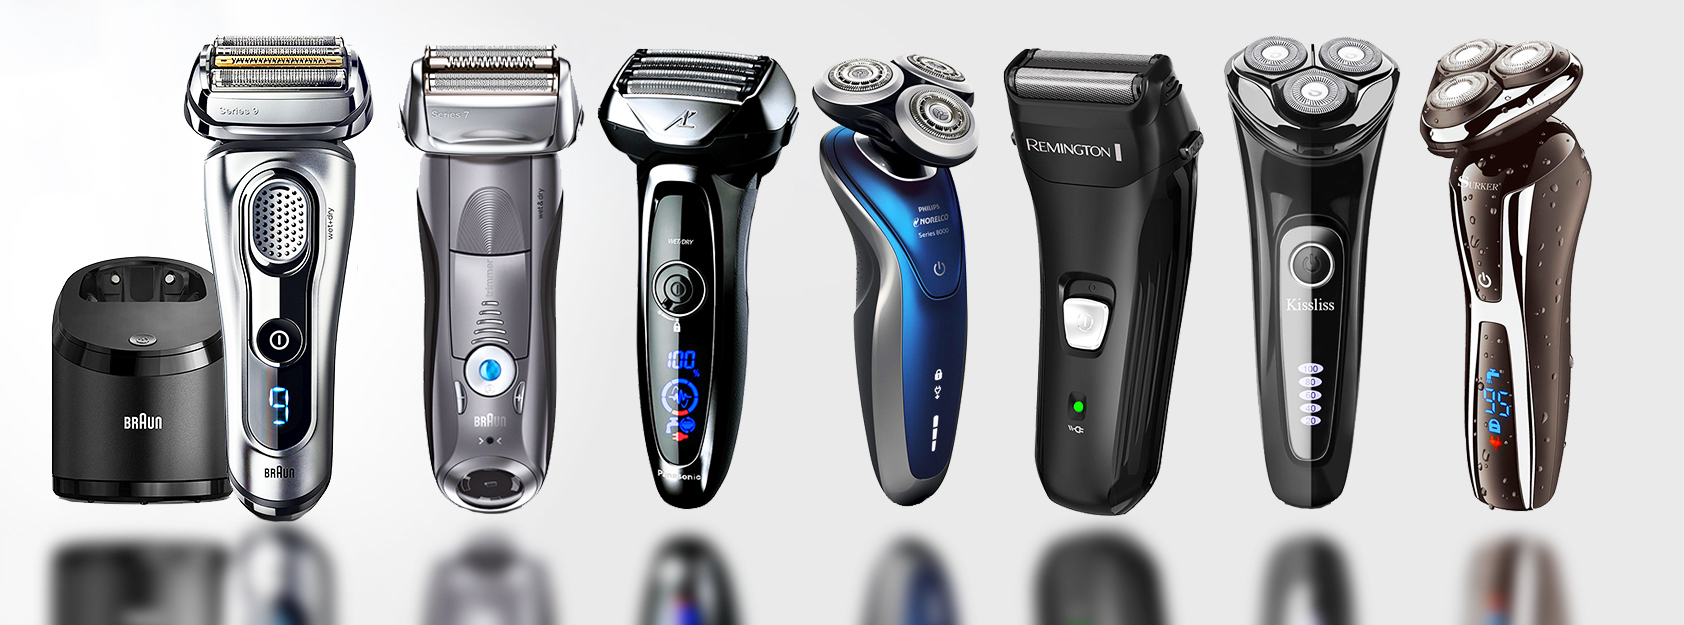 are electric shavers allowed on plane